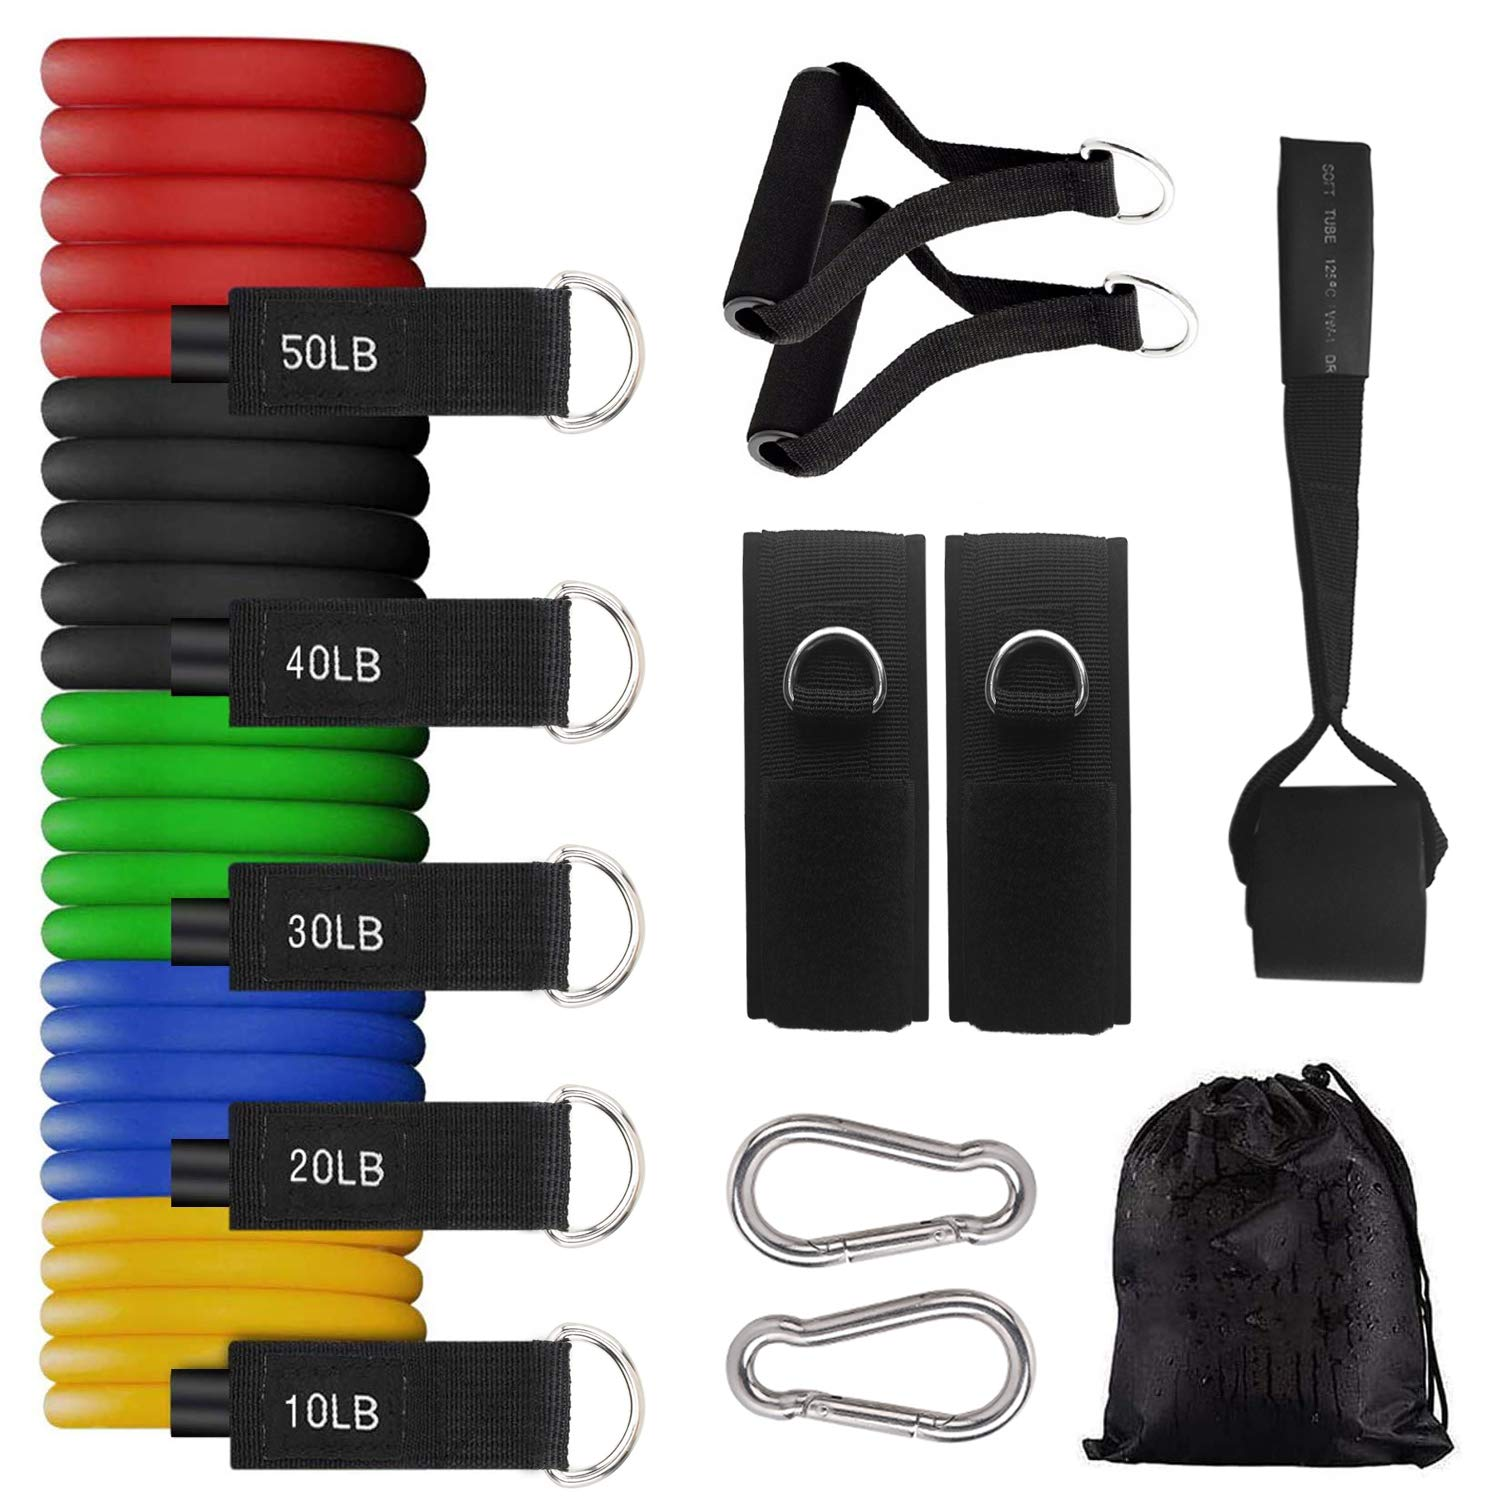 DHSO Upgraded Resistance Bands Set(150lbs) - 5 Stackable Exercise Bands,Door Anchor, Foam Handles, Legs Ankle Straps, Carry Bag for Pilates Training, Physical Therapy, Home Workouts